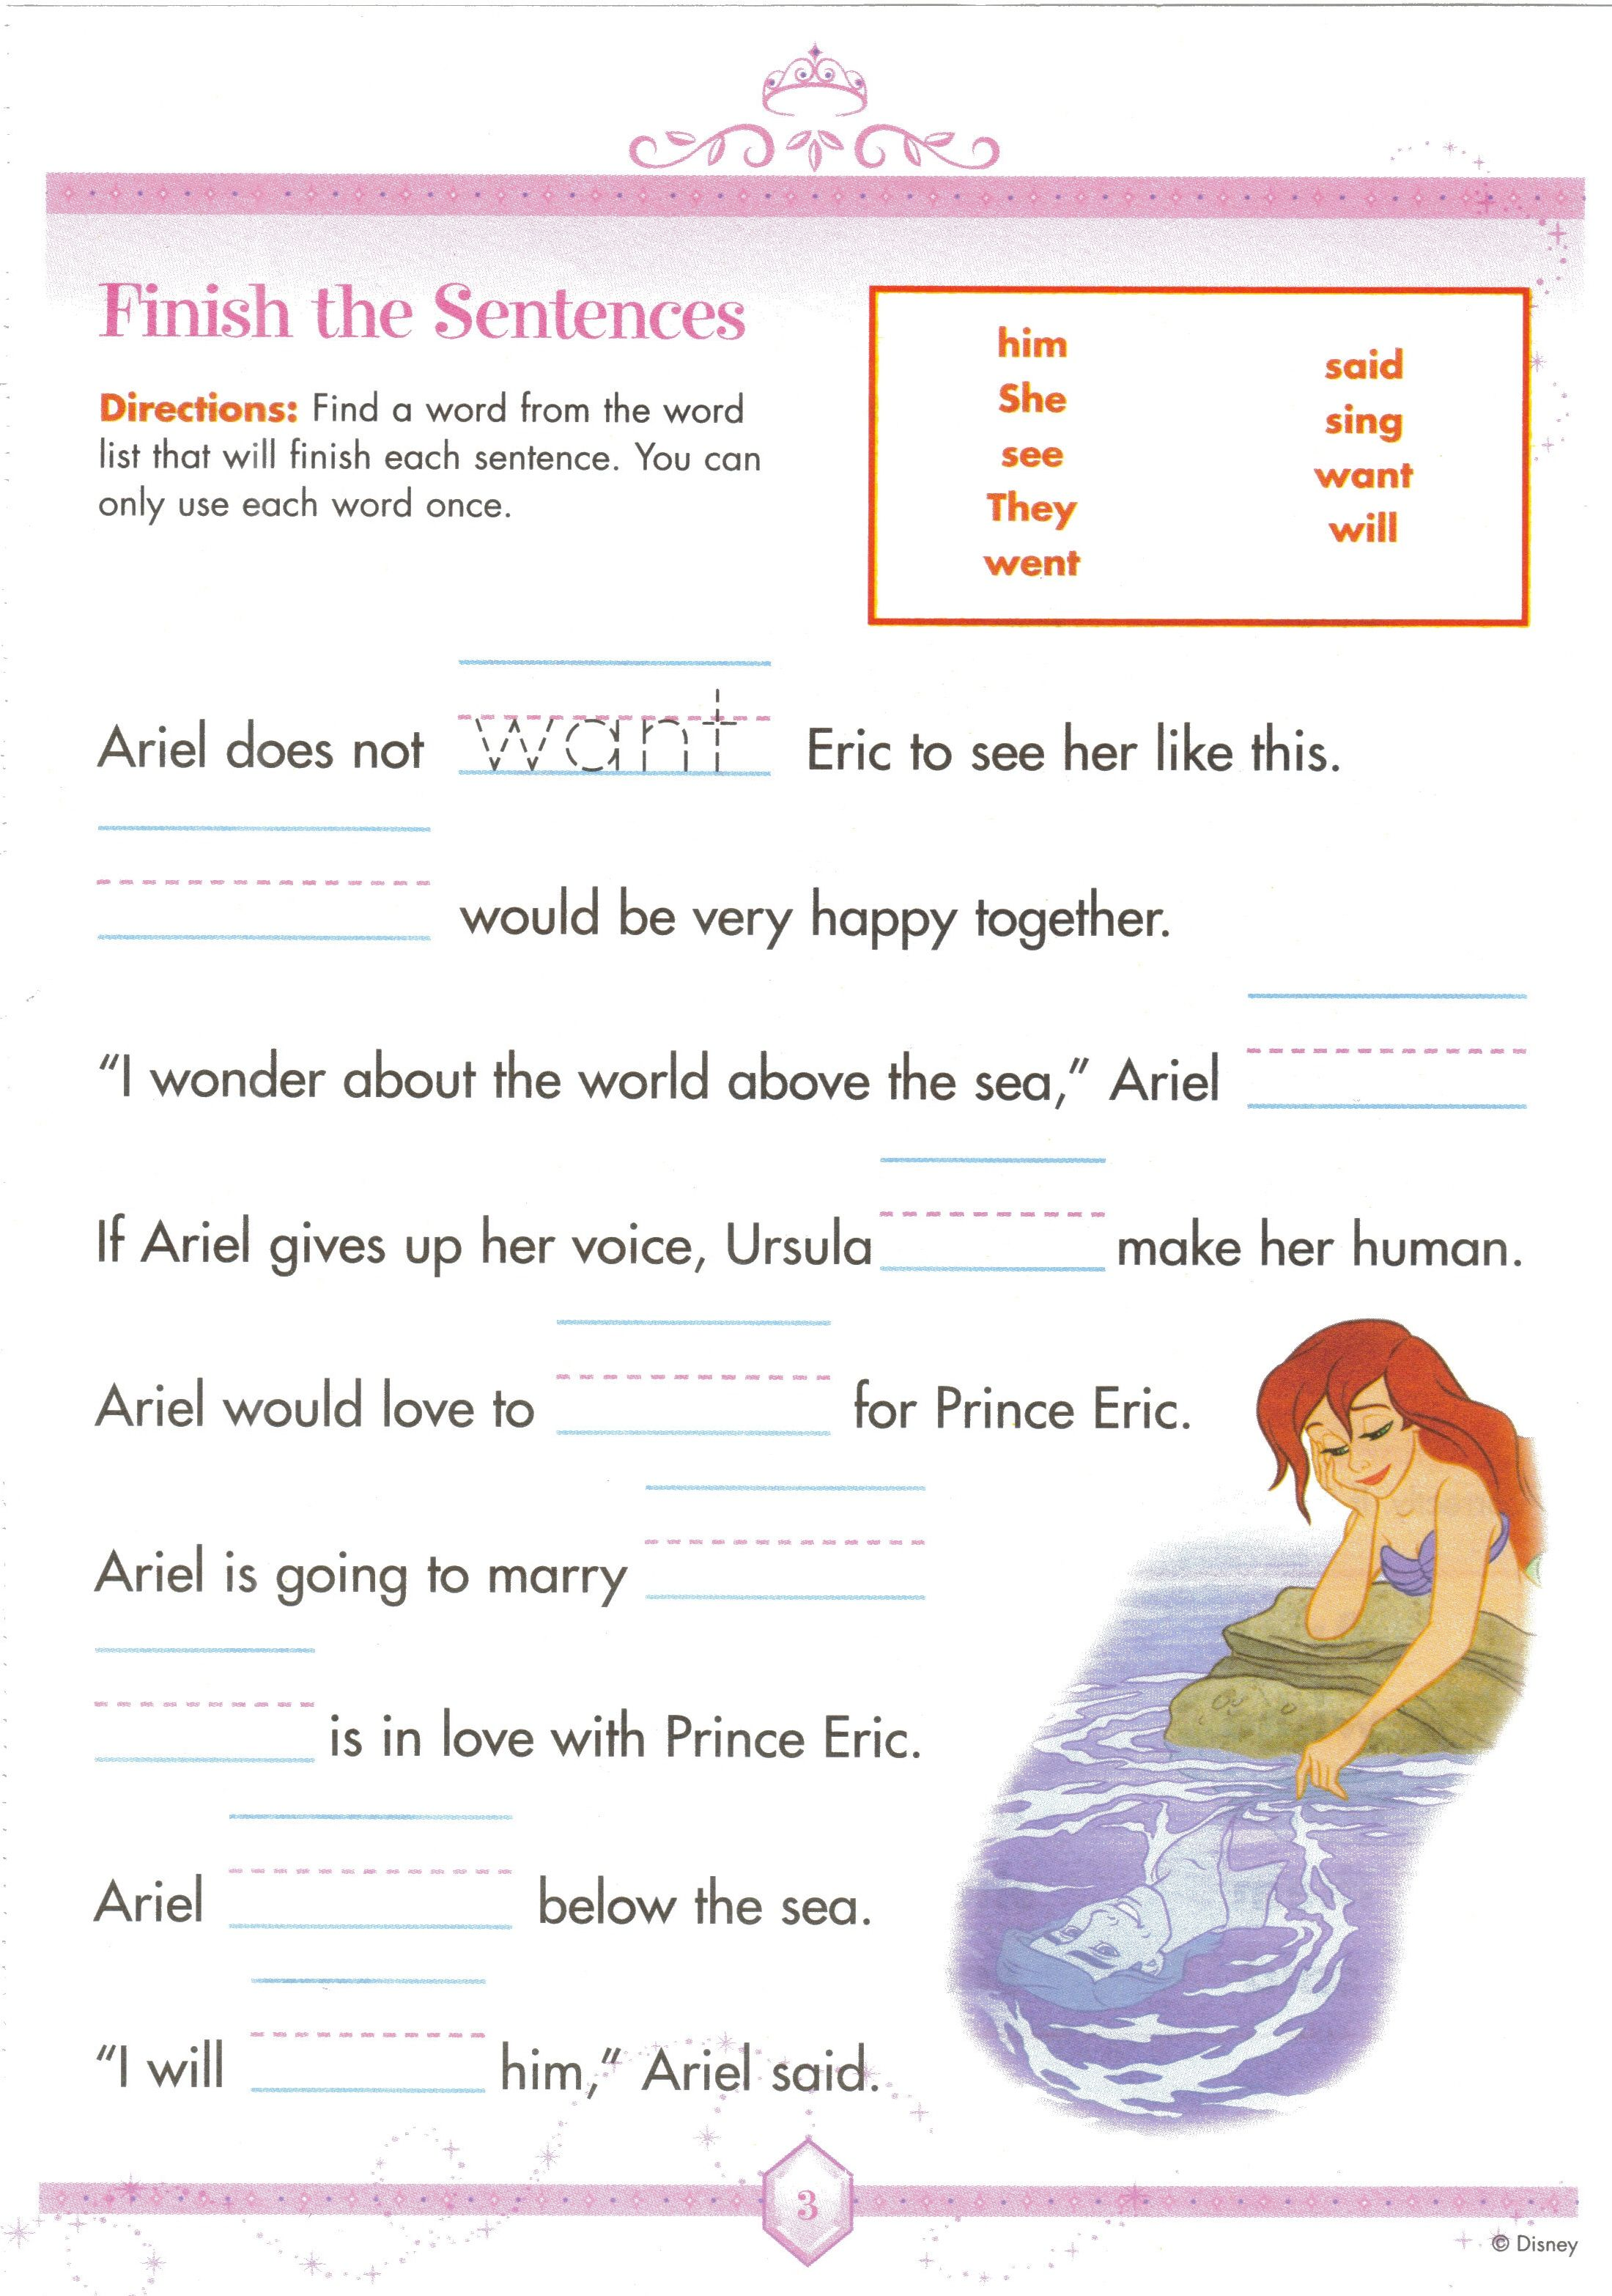 Weirdmailus  Wonderful  Images About Worksheets On Pinterest  Fun Facts For Kids  With Excellent  Images About Worksheets On Pinterest  Fun Facts For Kids Earth Day Worksheets And Jungles With Cute Longitude And Latitude Worksheets Th Grade Also Personal Information Worksheets In Addition Dialect Worksheet And Oy And Oi Worksheets As Well As Ea Ee Worksheets Additionally Expanded Form Multiplication Worksheets From Pinterestcom With Weirdmailus  Excellent  Images About Worksheets On Pinterest  Fun Facts For Kids  With Cute  Images About Worksheets On Pinterest  Fun Facts For Kids Earth Day Worksheets And Jungles And Wonderful Longitude And Latitude Worksheets Th Grade Also Personal Information Worksheets In Addition Dialect Worksheet From Pinterestcom